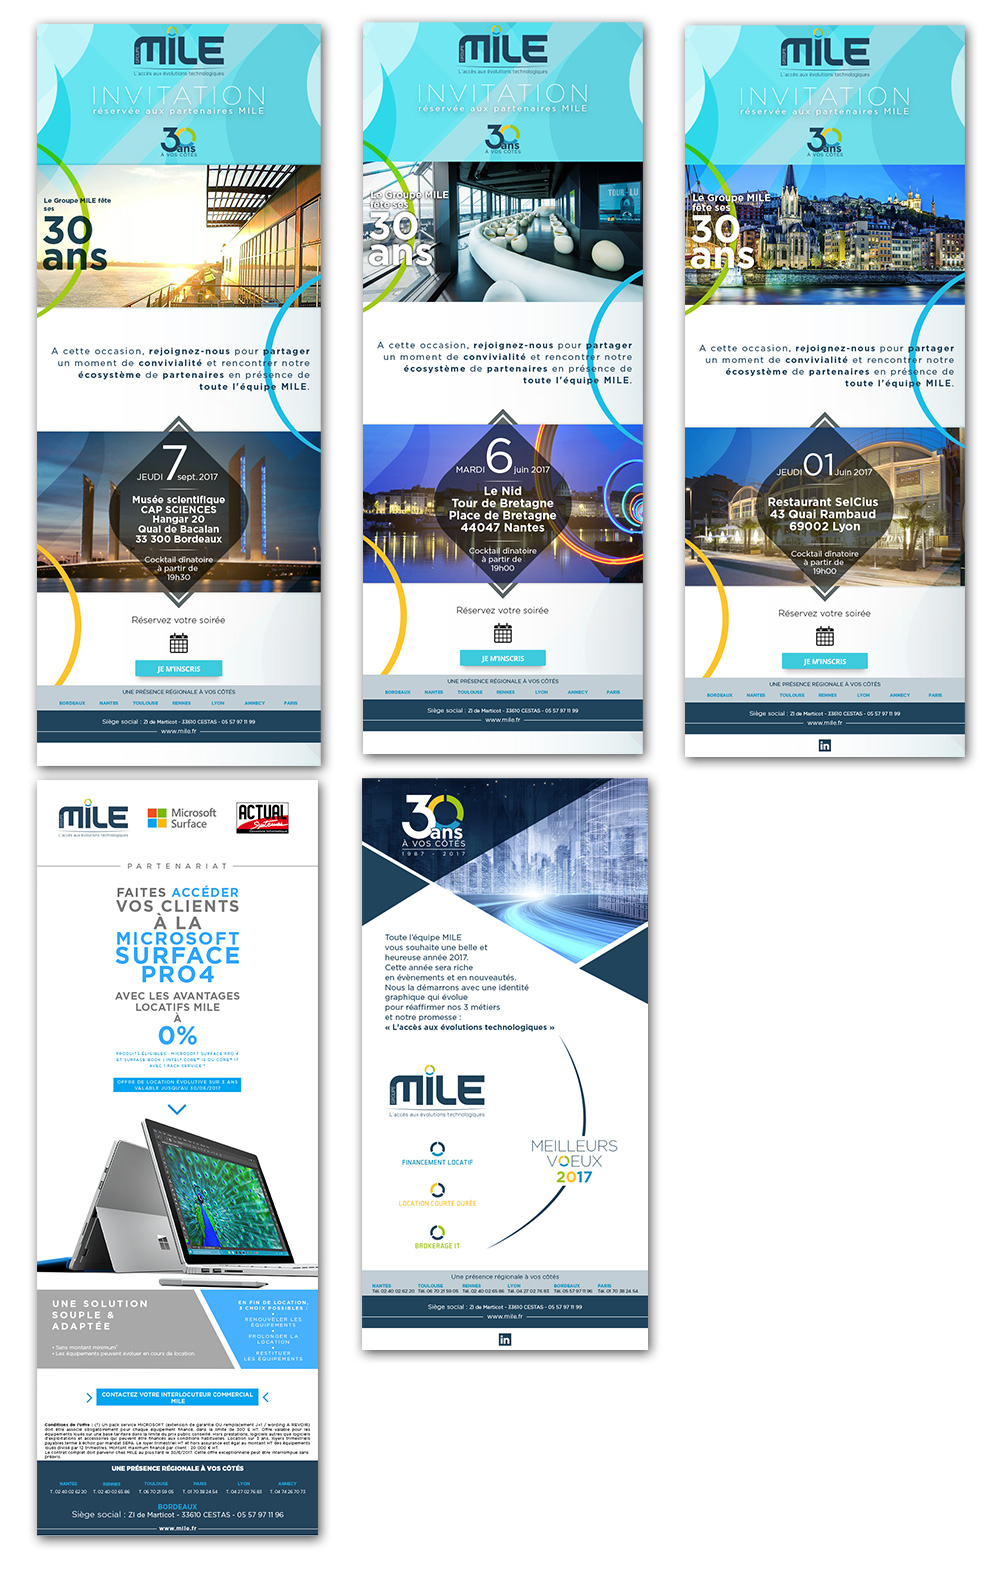 MILE-creation-newsletters-bordeaux